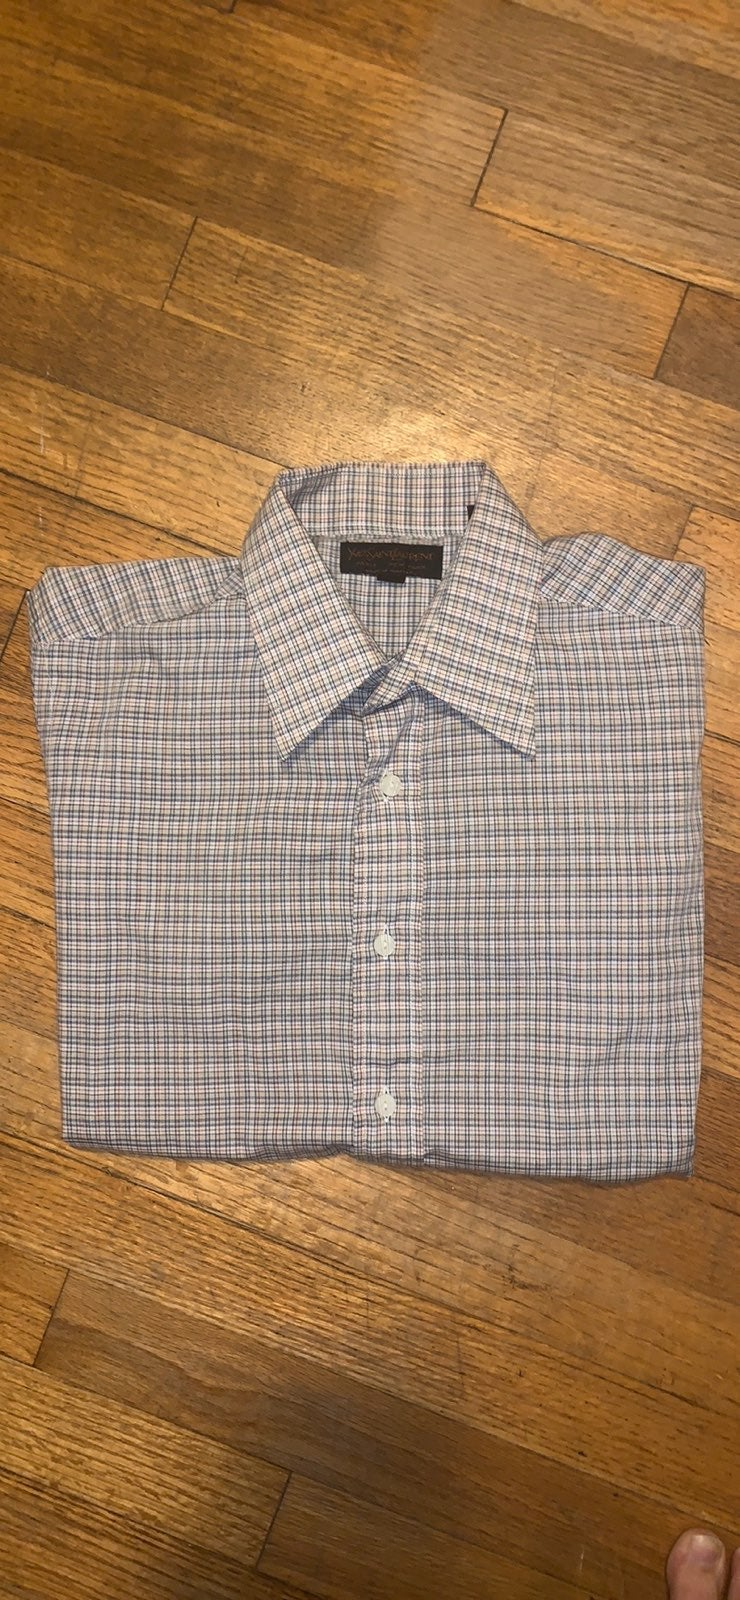 YSL long sleeve button up for men